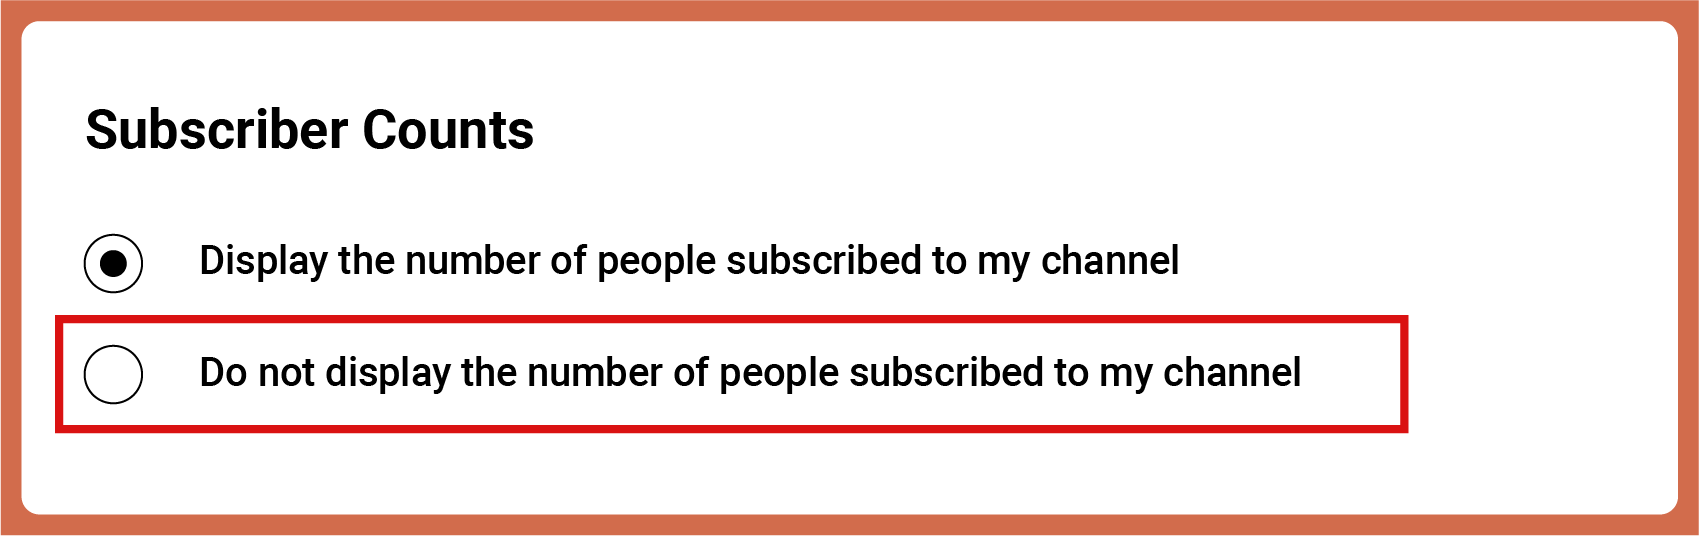 Subscriber counts